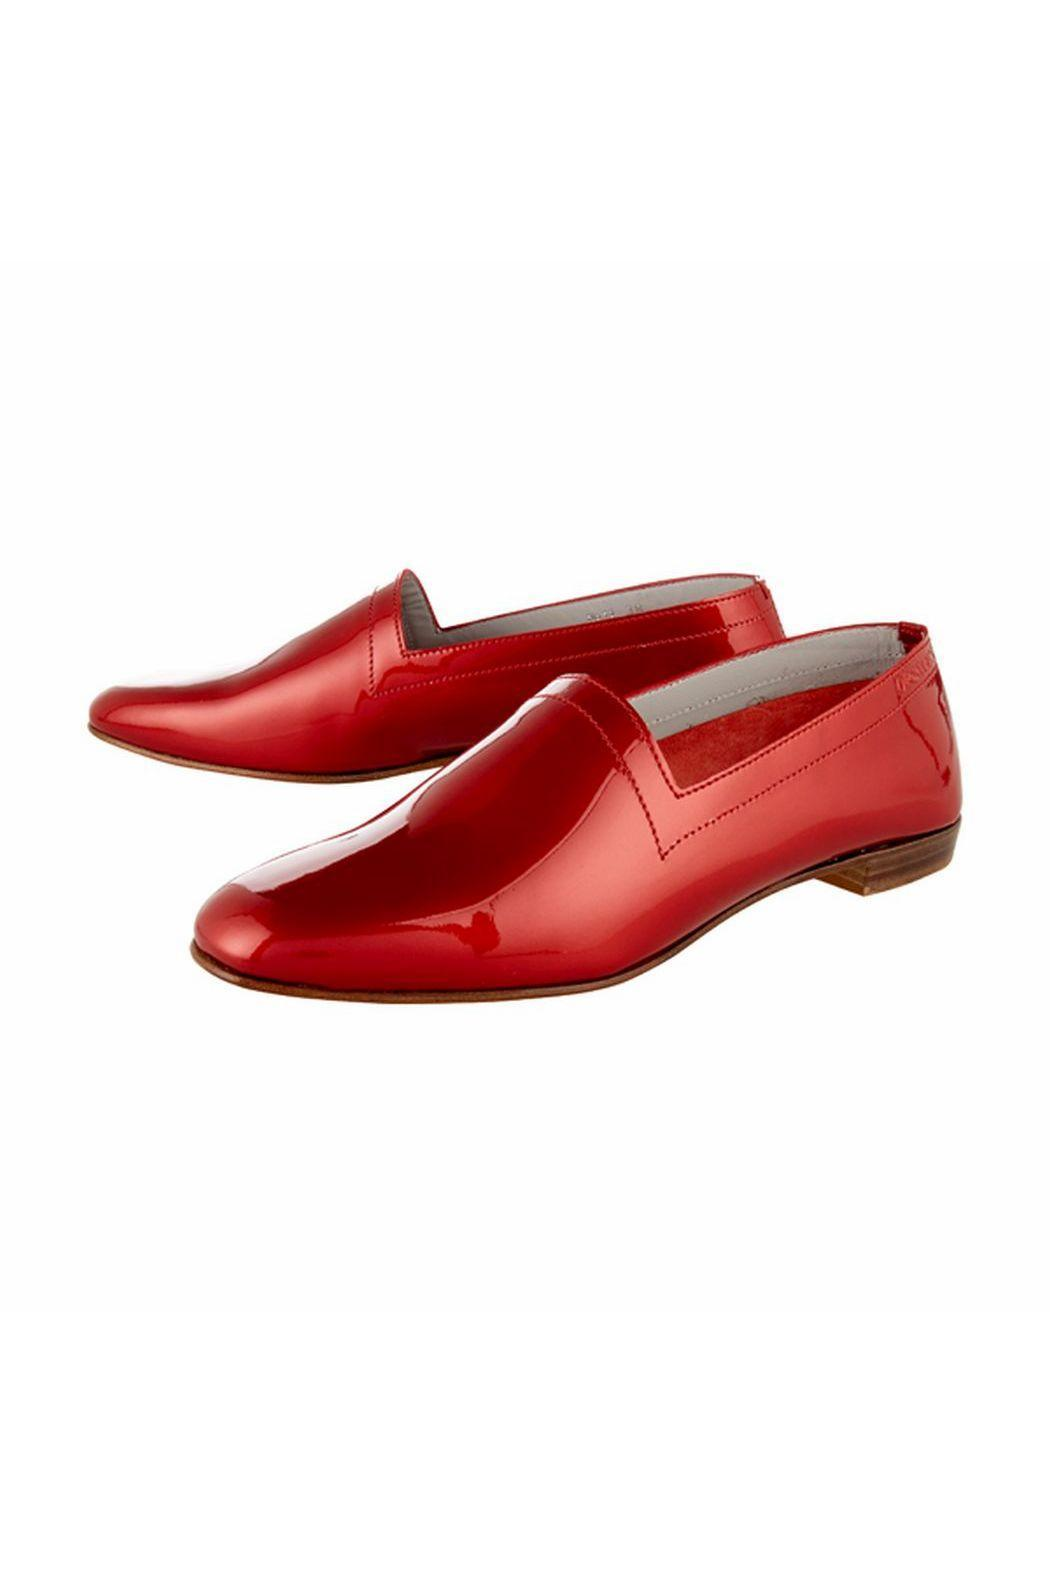 OPS&OPS Red Patent-Leather Shoe - Side Cropped Image